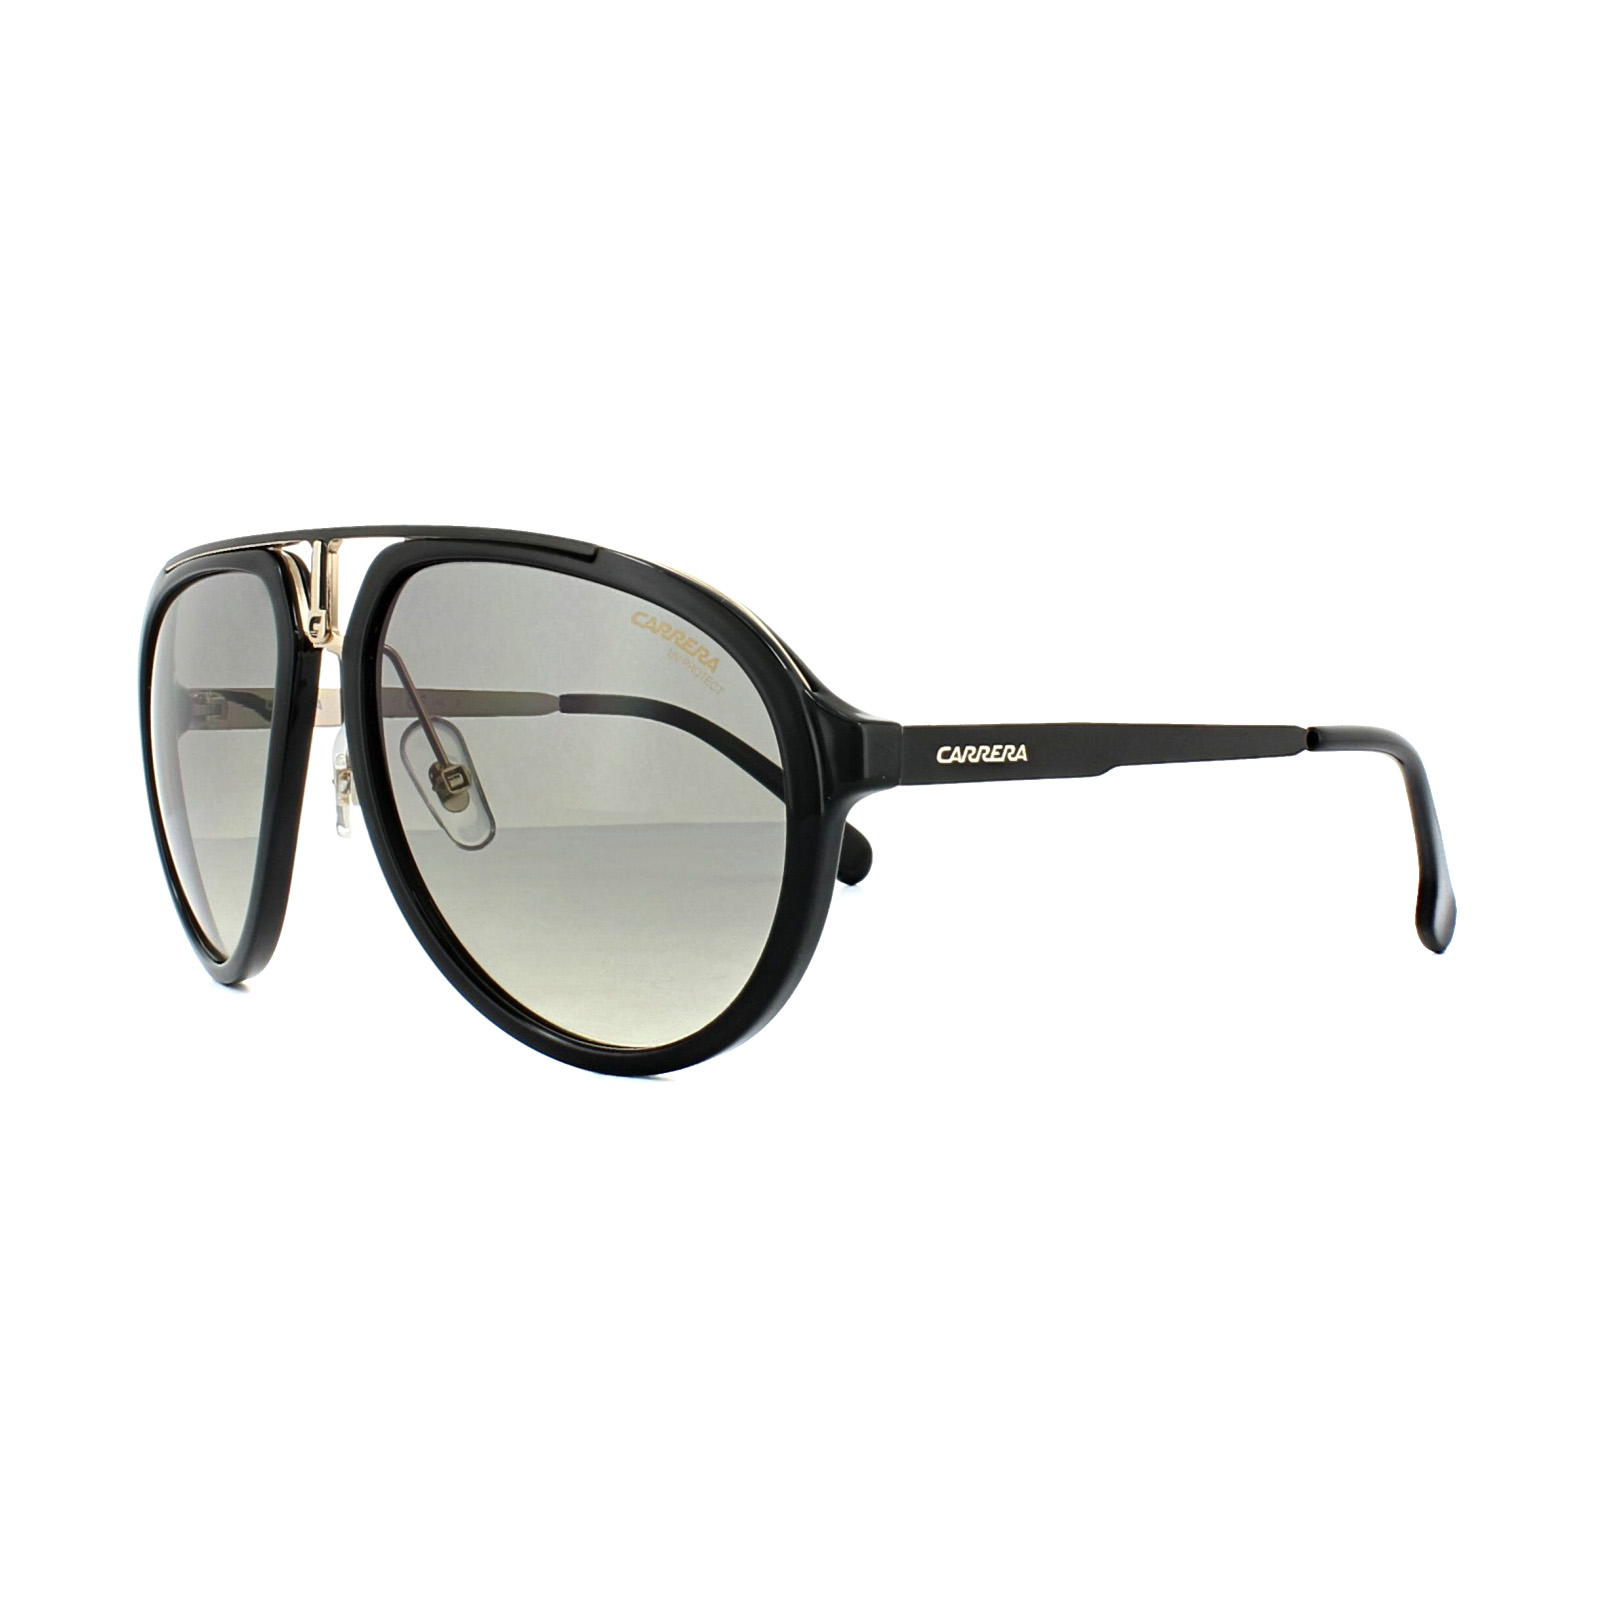 Carrera 1003/S 807/PR 58 black / grey brown WLc4I